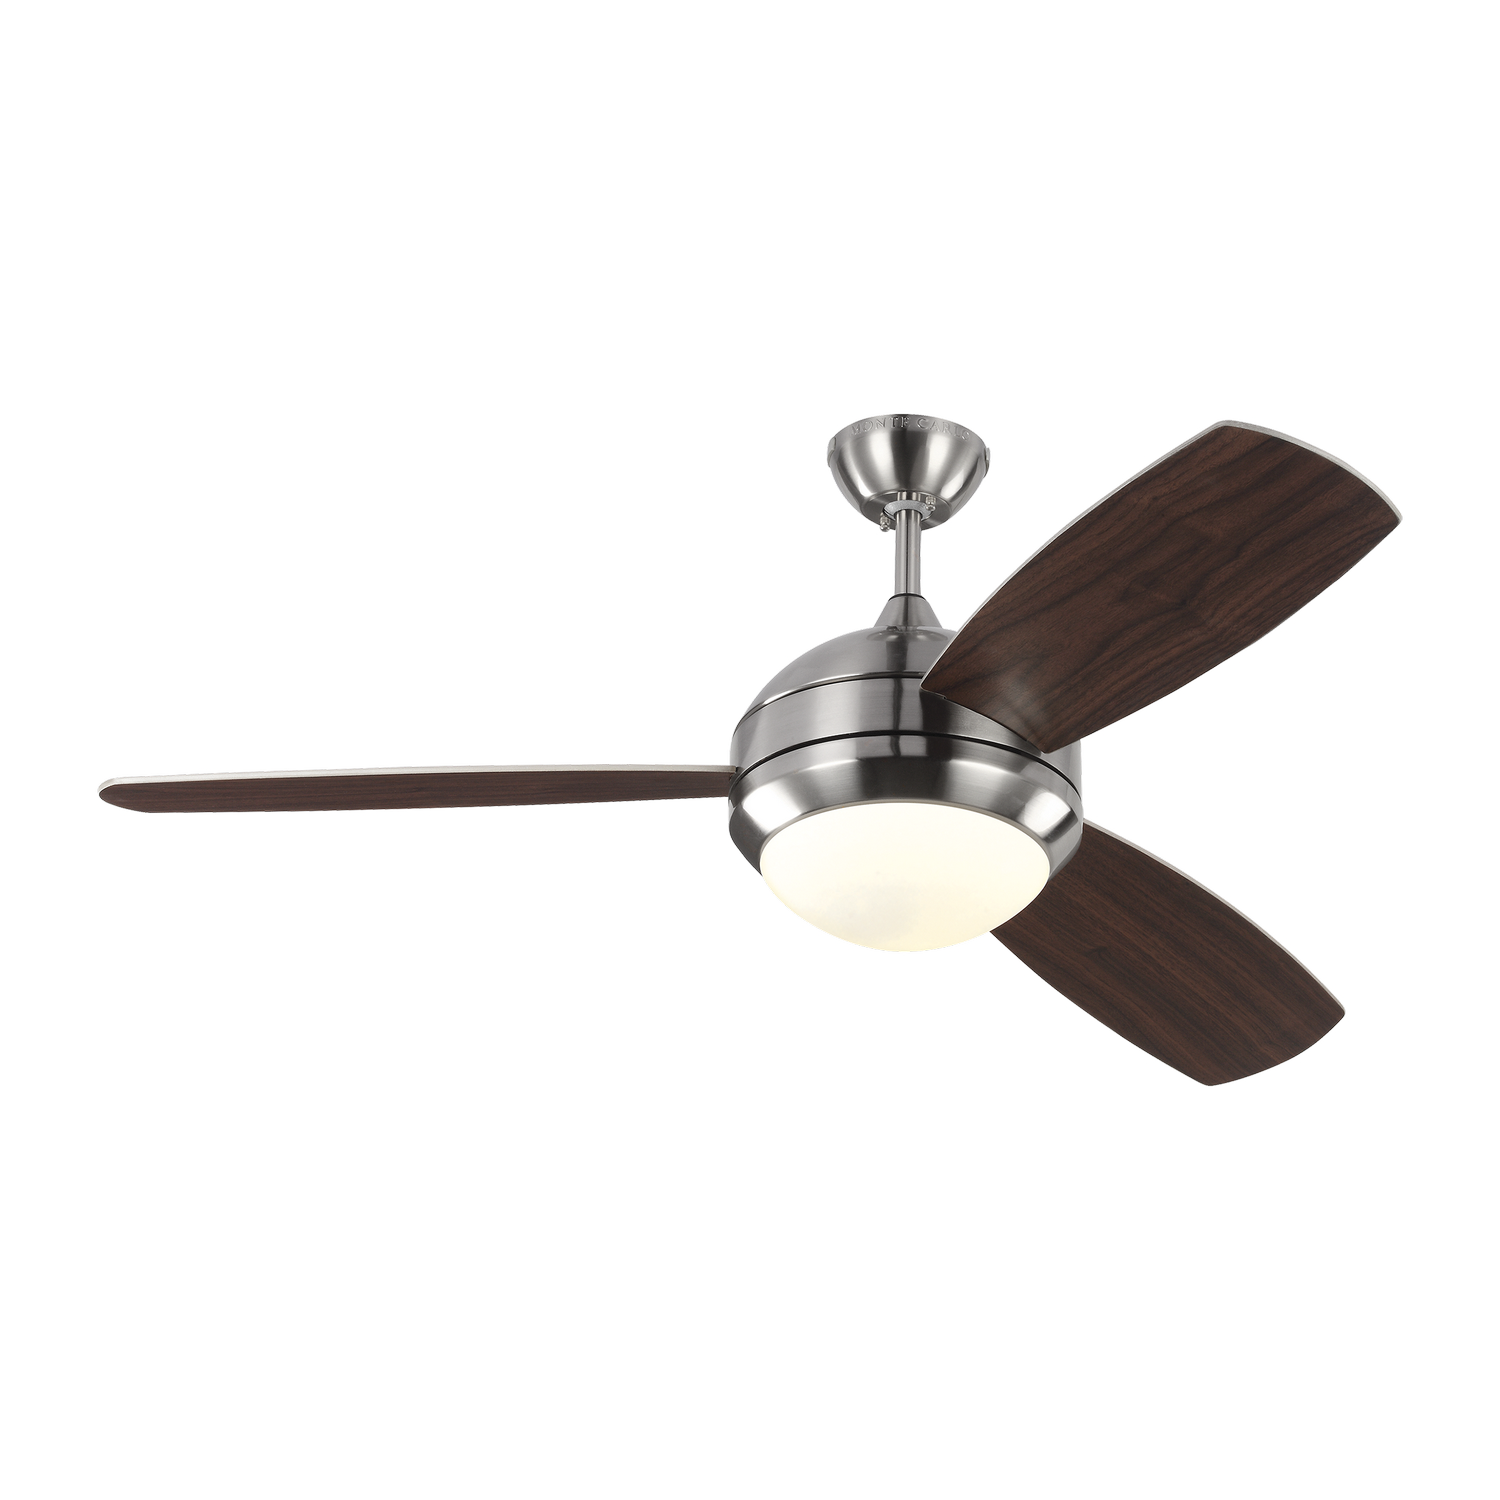 52 inchCeiling Fan from the Discus Trio collection by Monte Carlo 3DIR52BSD V1